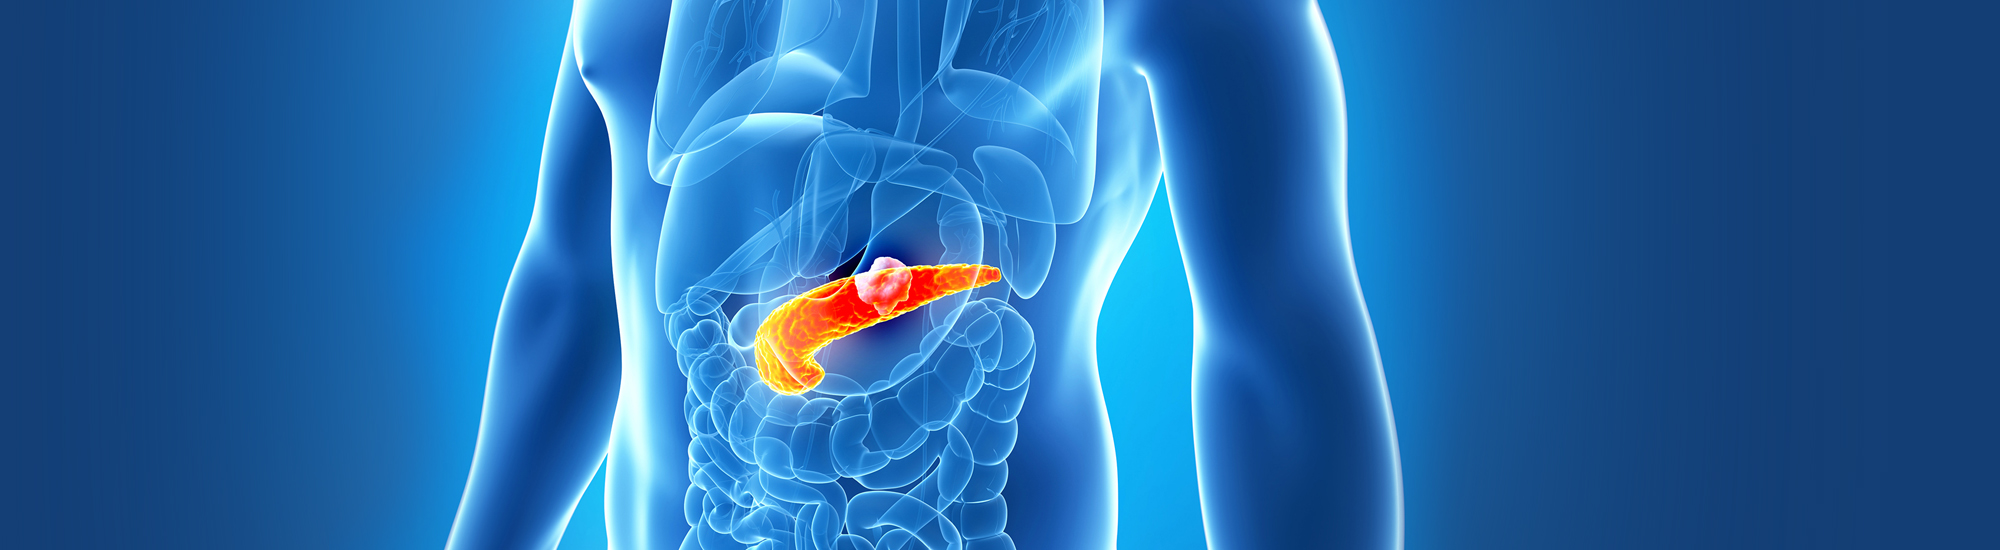 Ayurvedic treatment for Pancreatitis Diagnosis